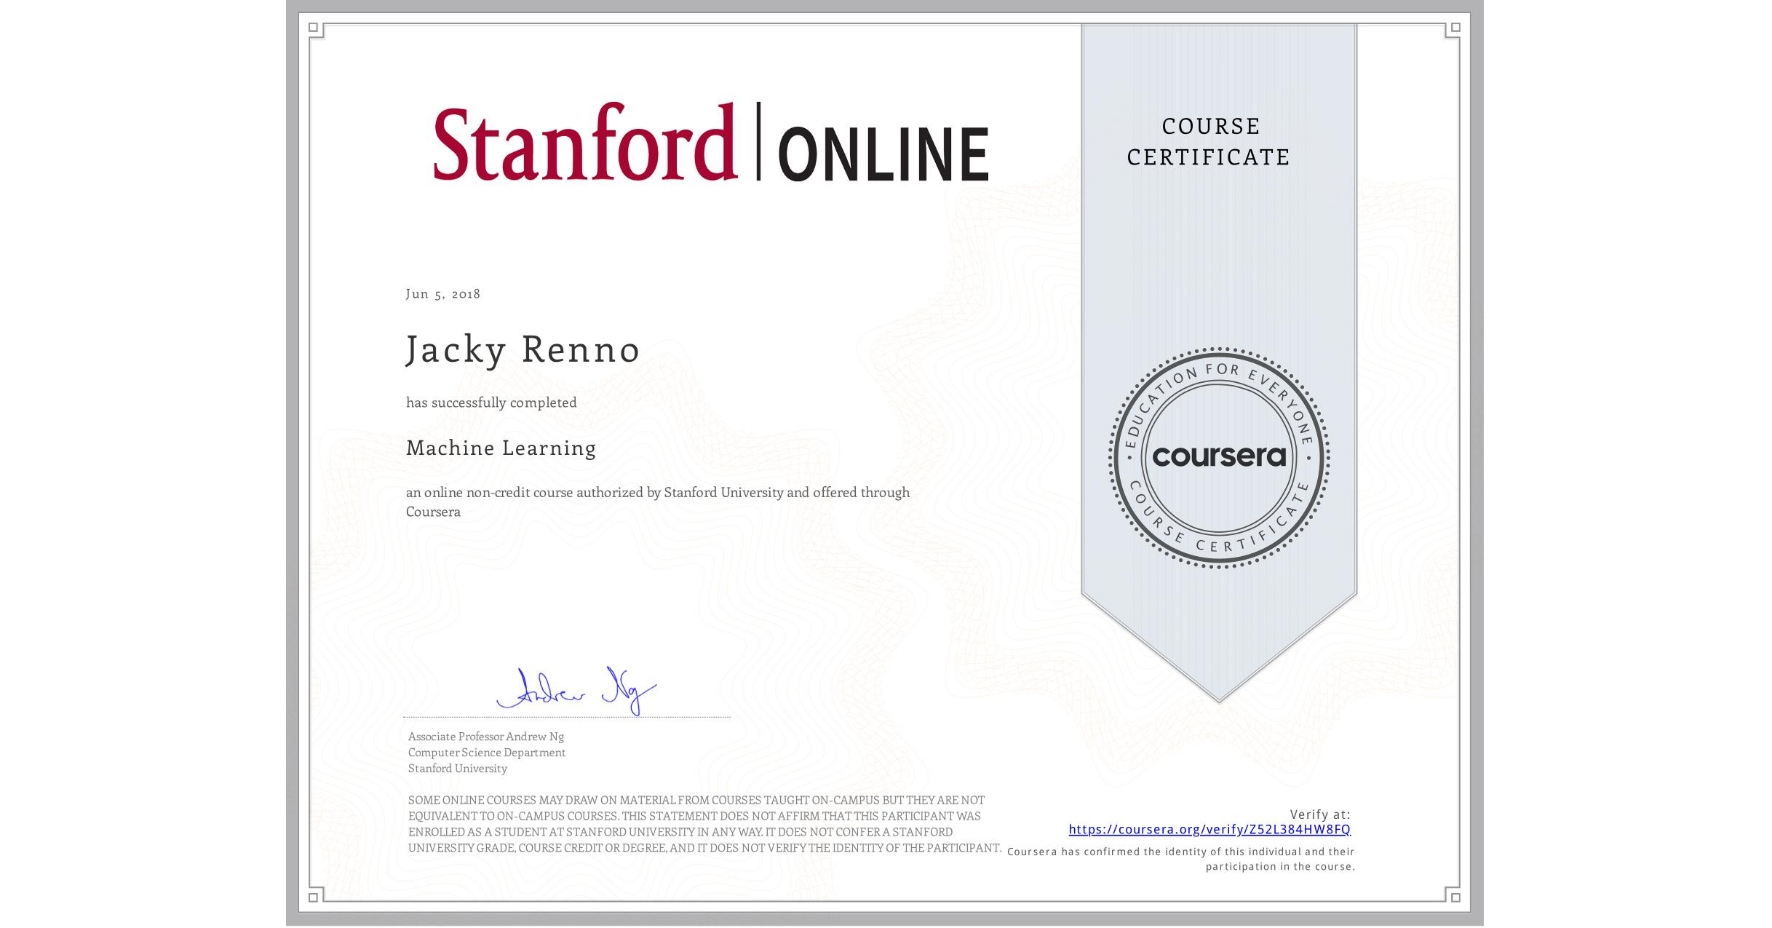 View certificate for Jacky Renno, Machine Learning, an online non-credit course authorized by Stanford University and offered through Coursera